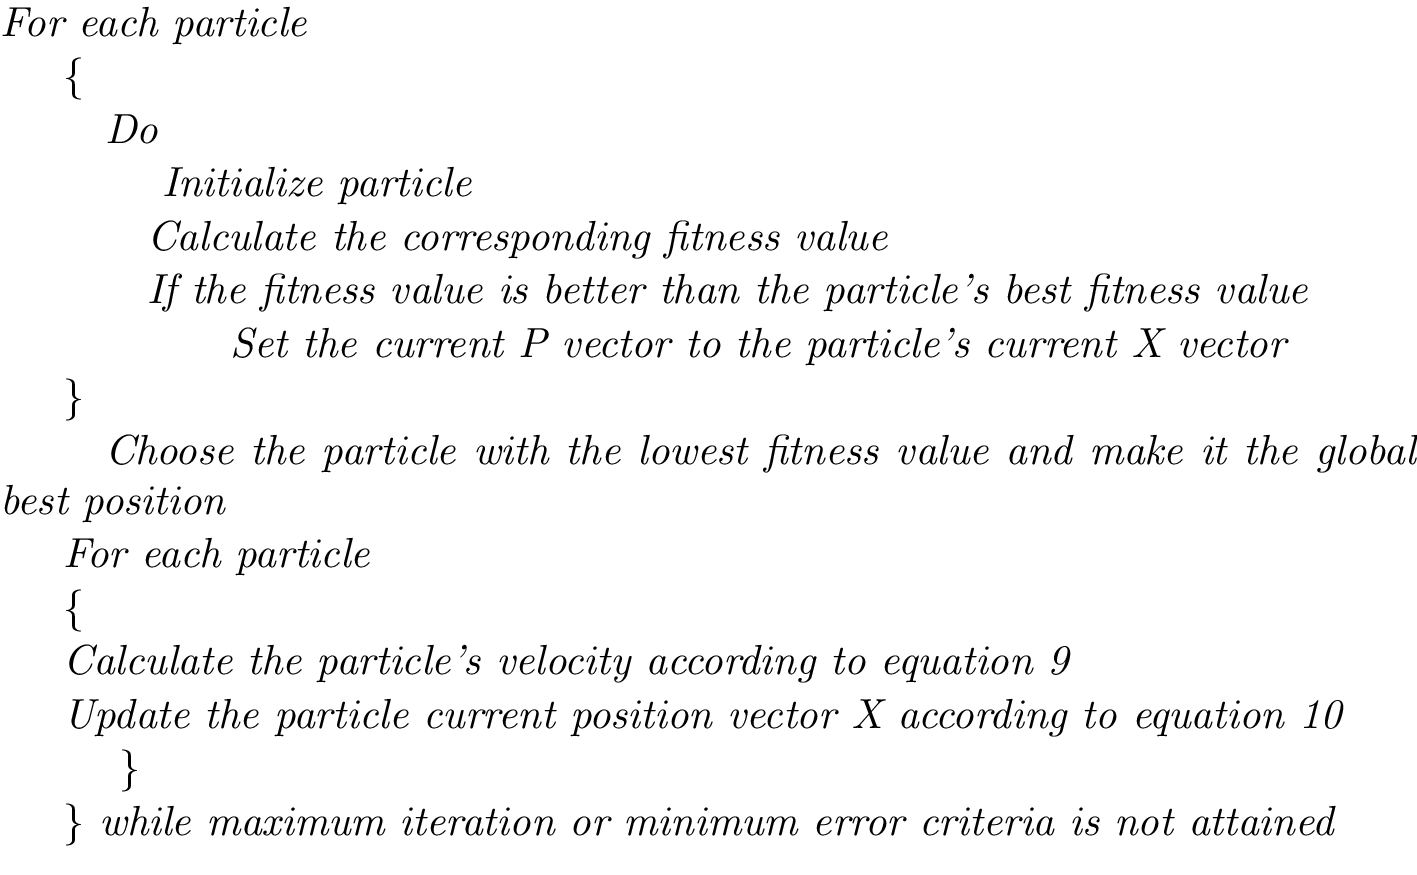 A survey on particle swarm optimization with emphasis on